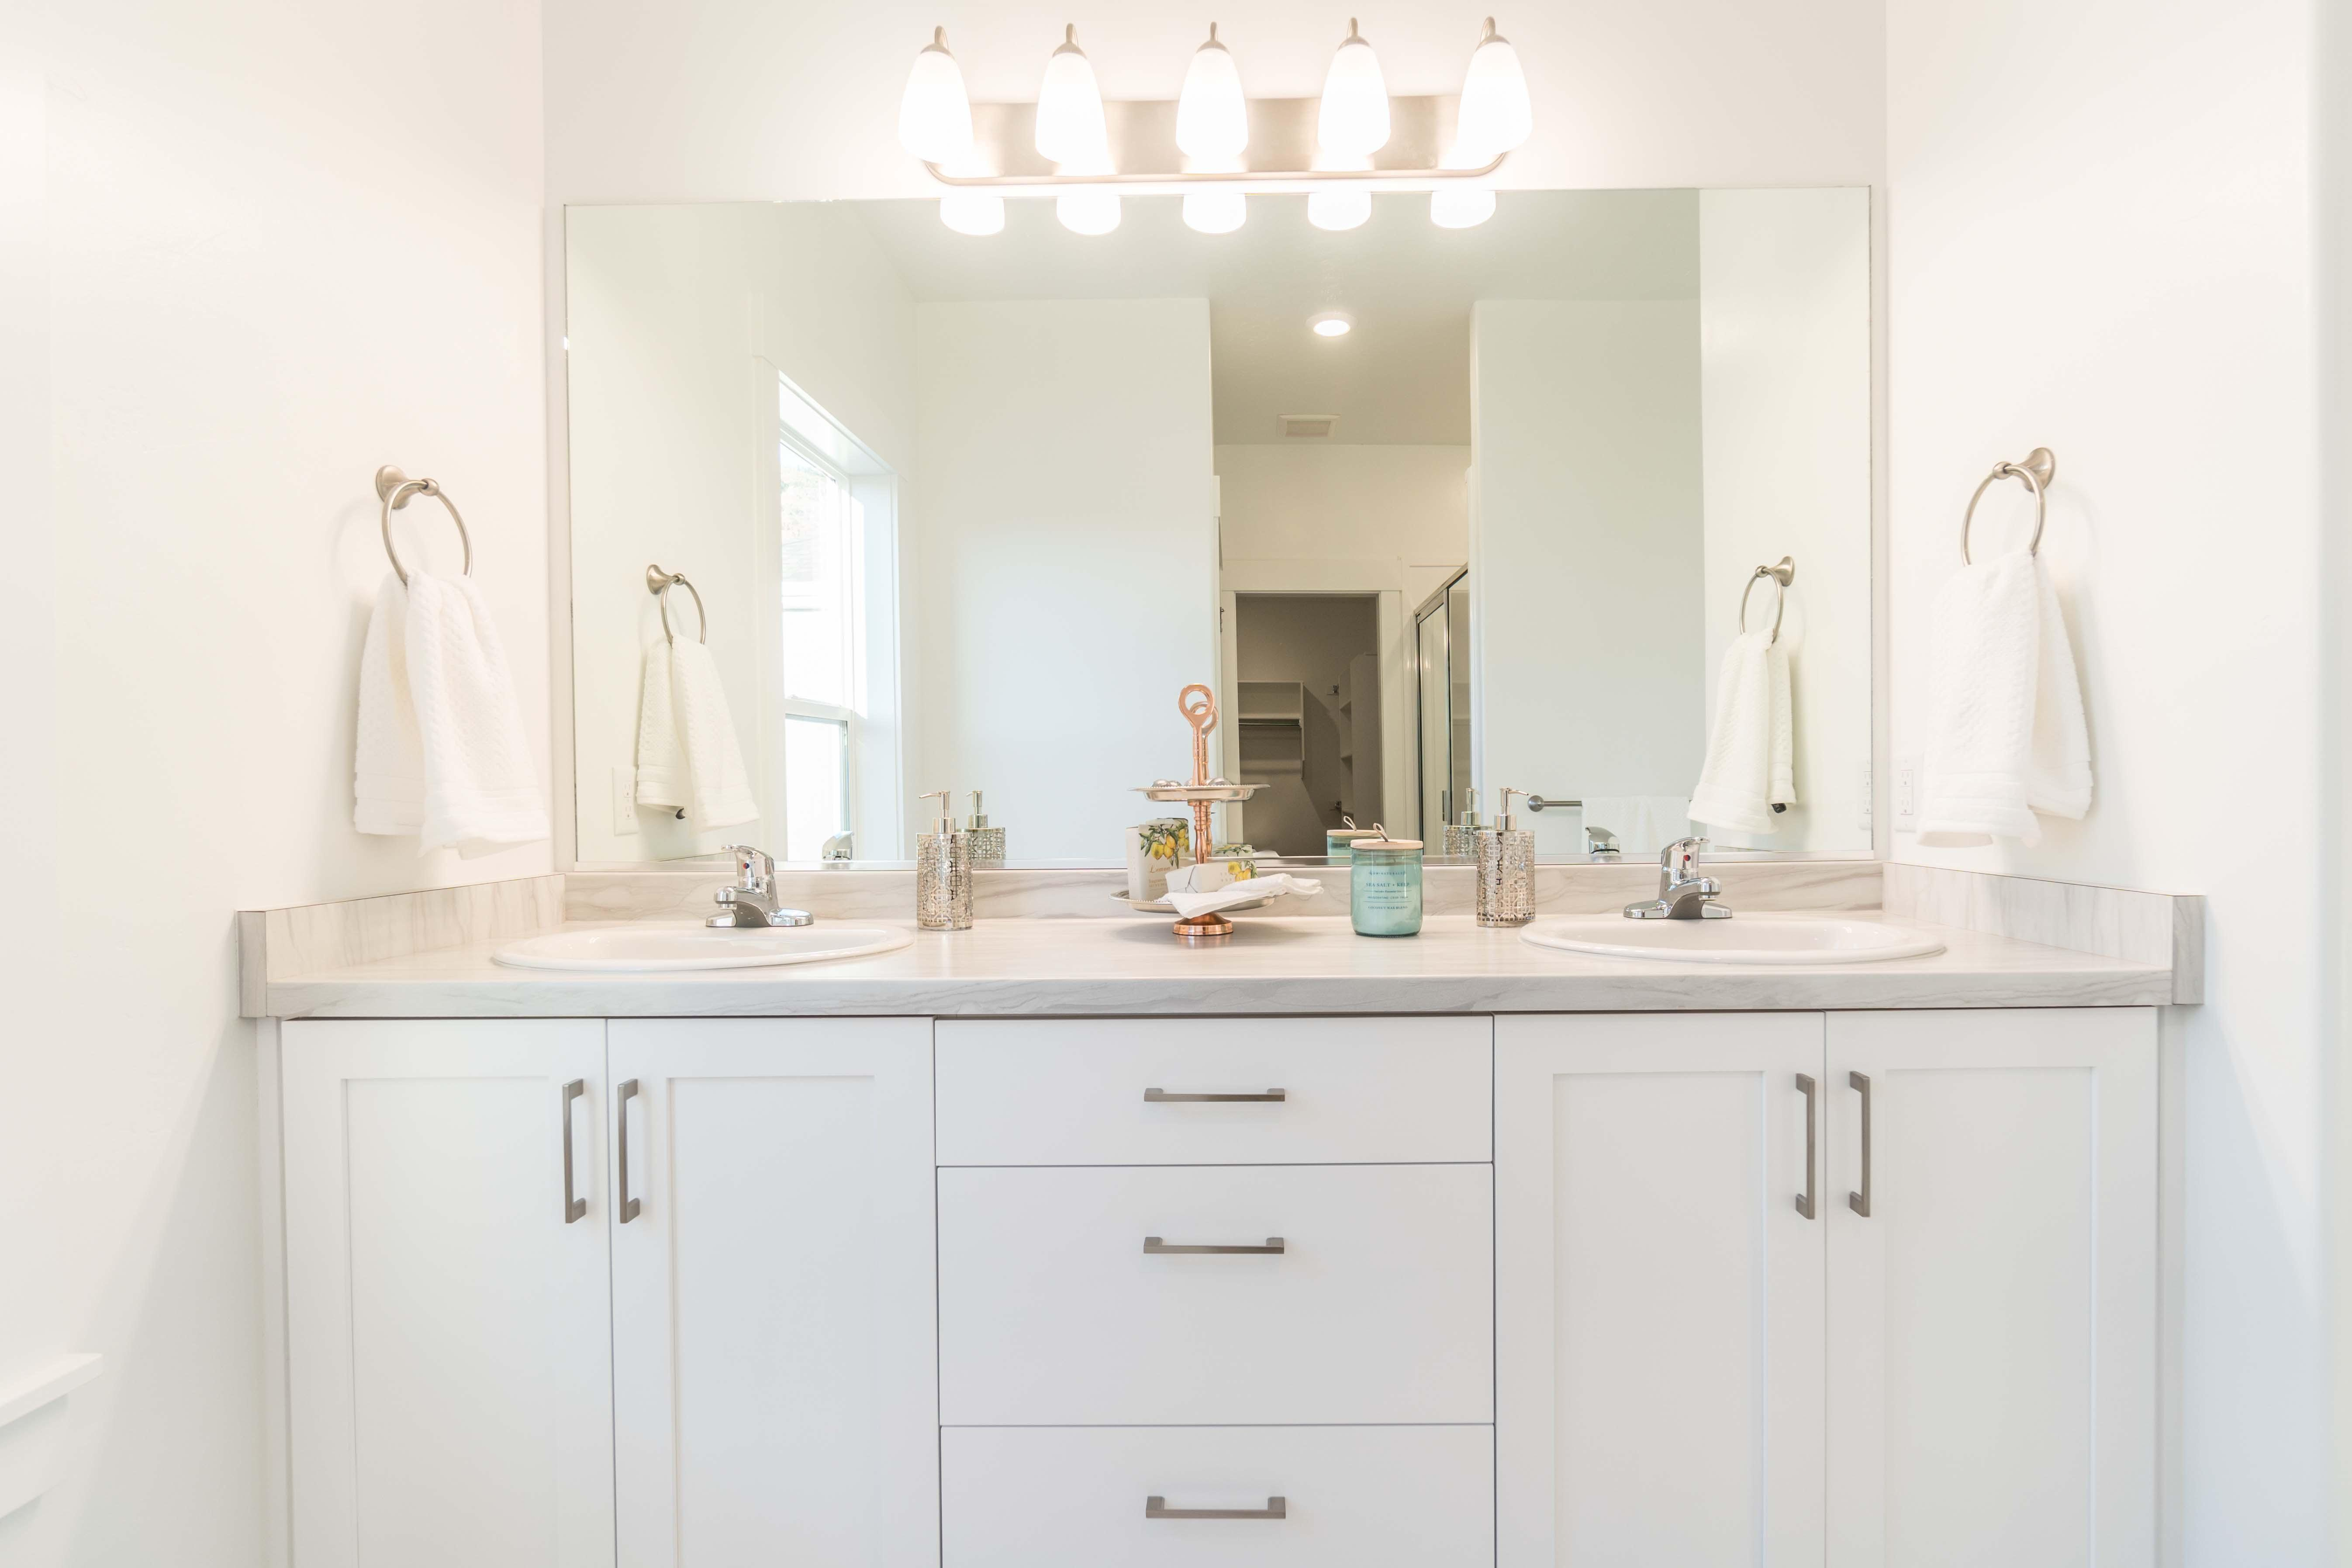 Bathroom featured in the Summerlyn (SOG)  By Visionary Homes in Logan, UT